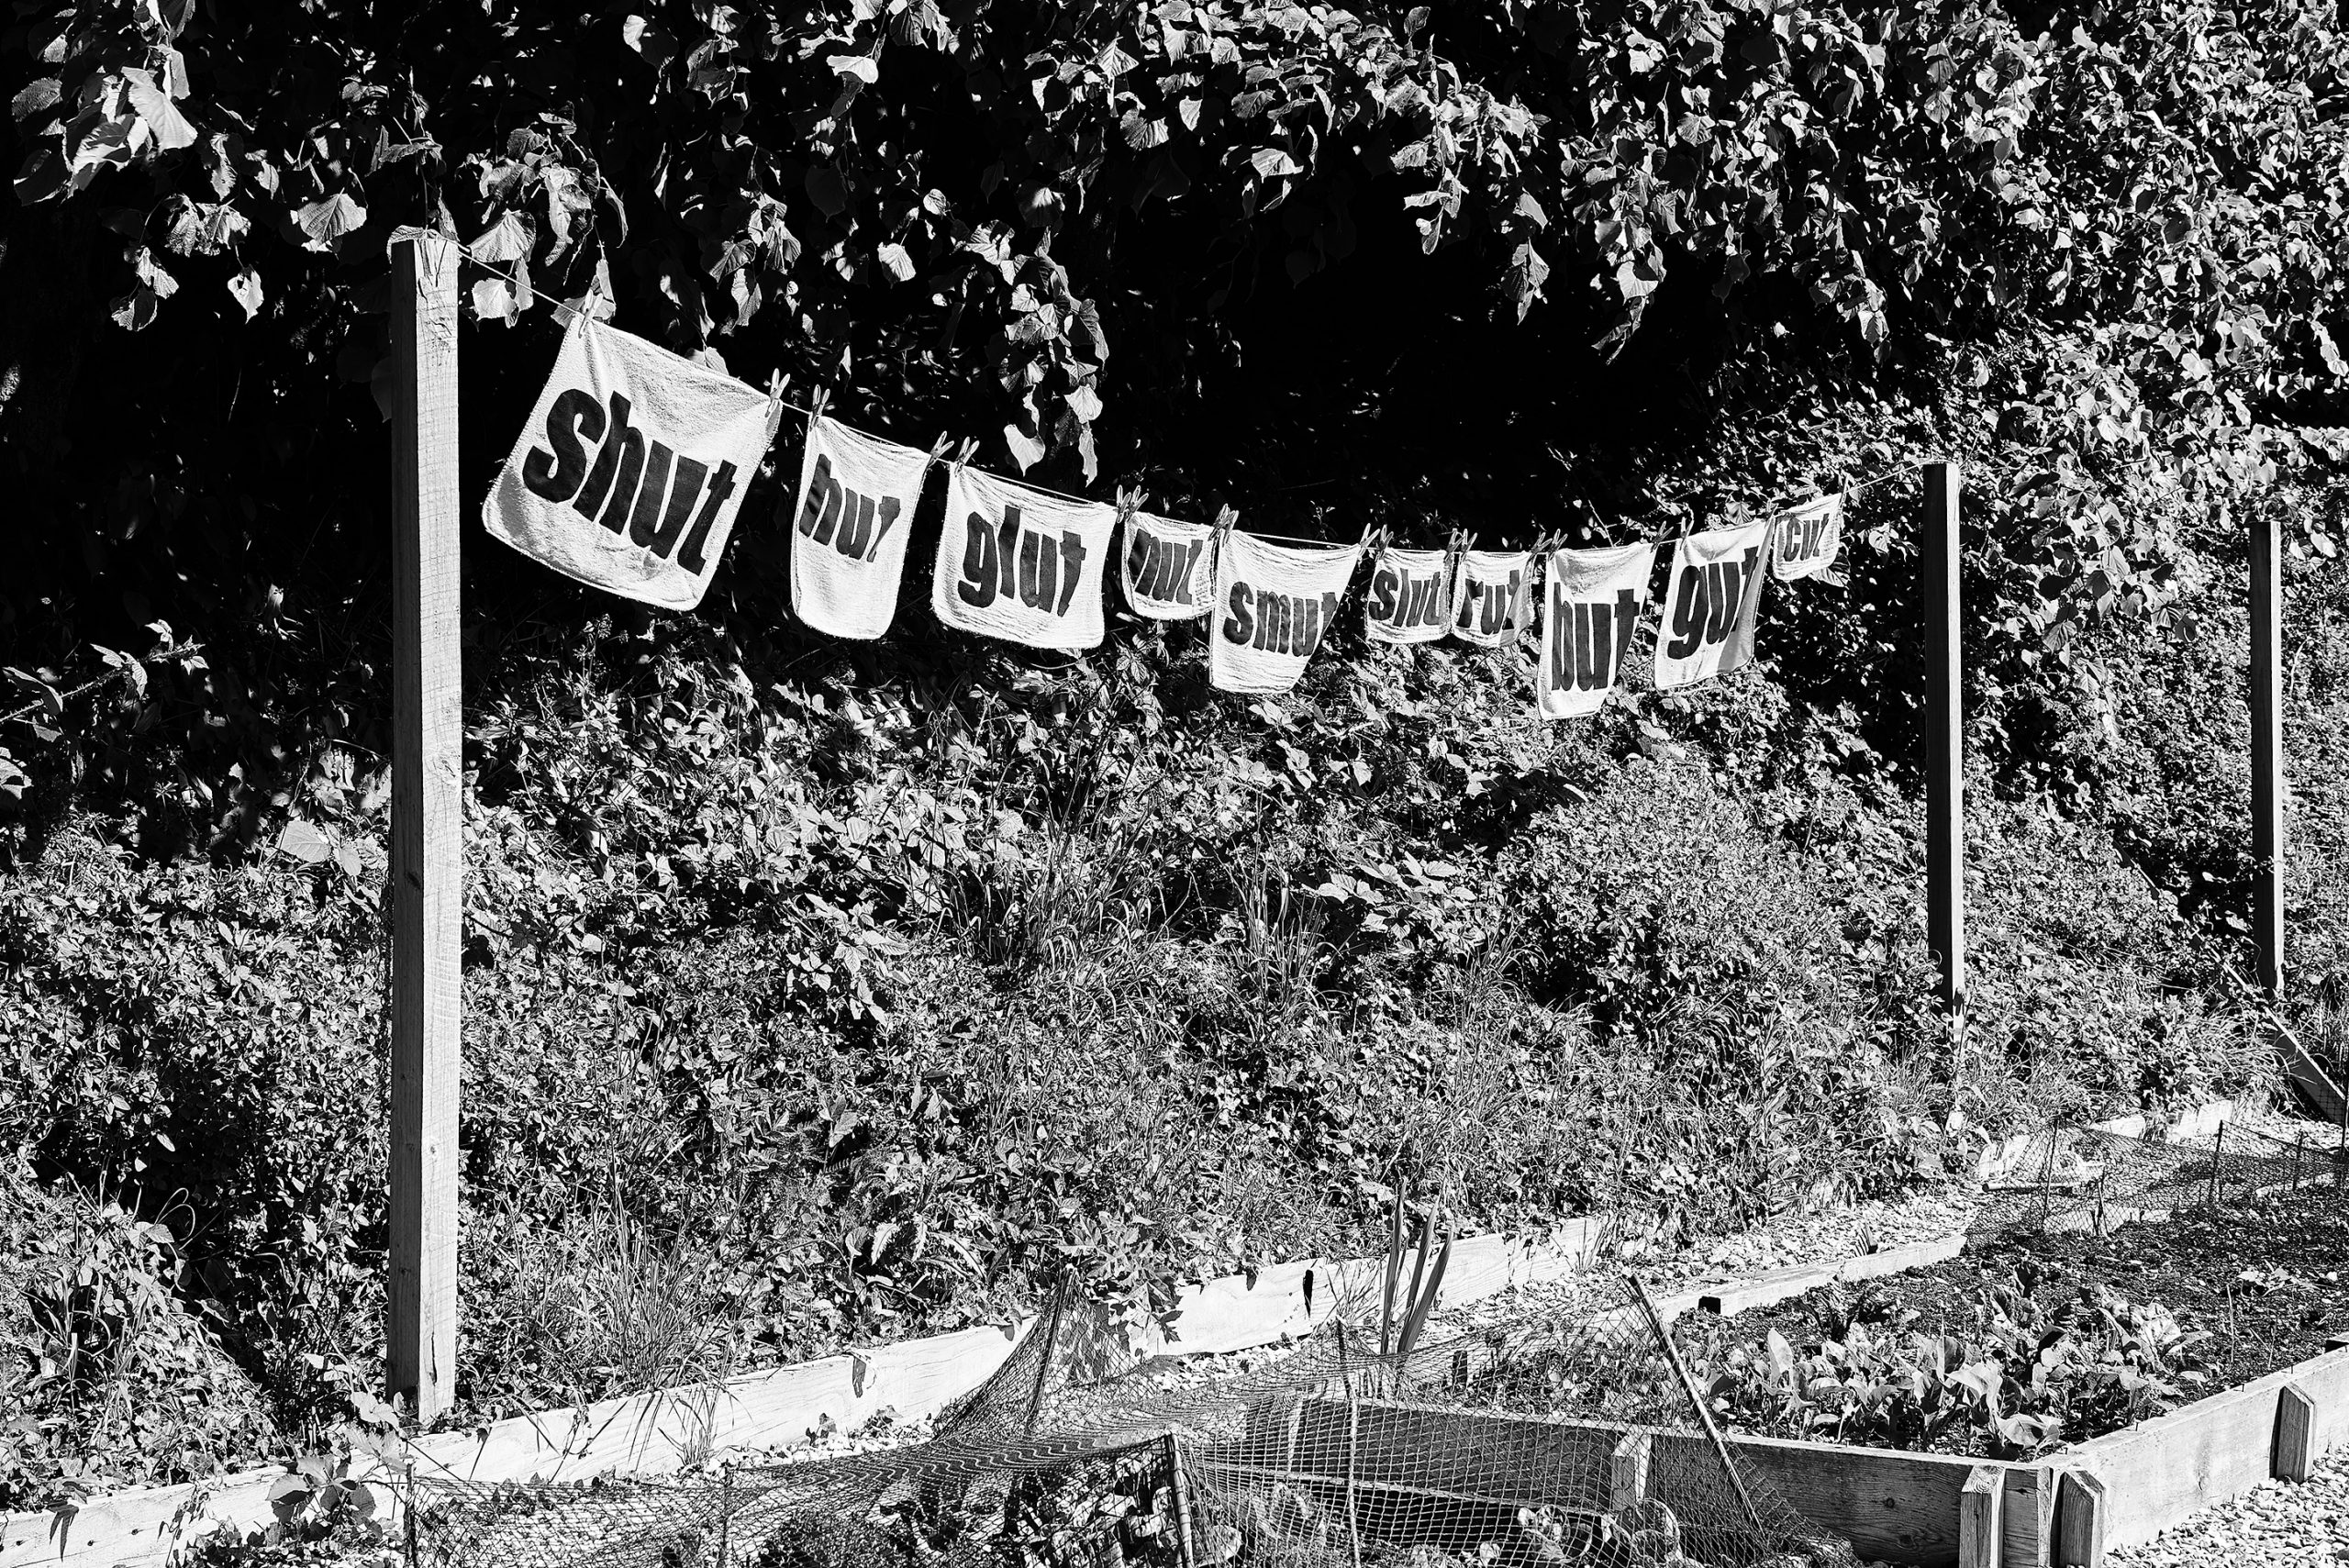 vegetable patch with banners reading